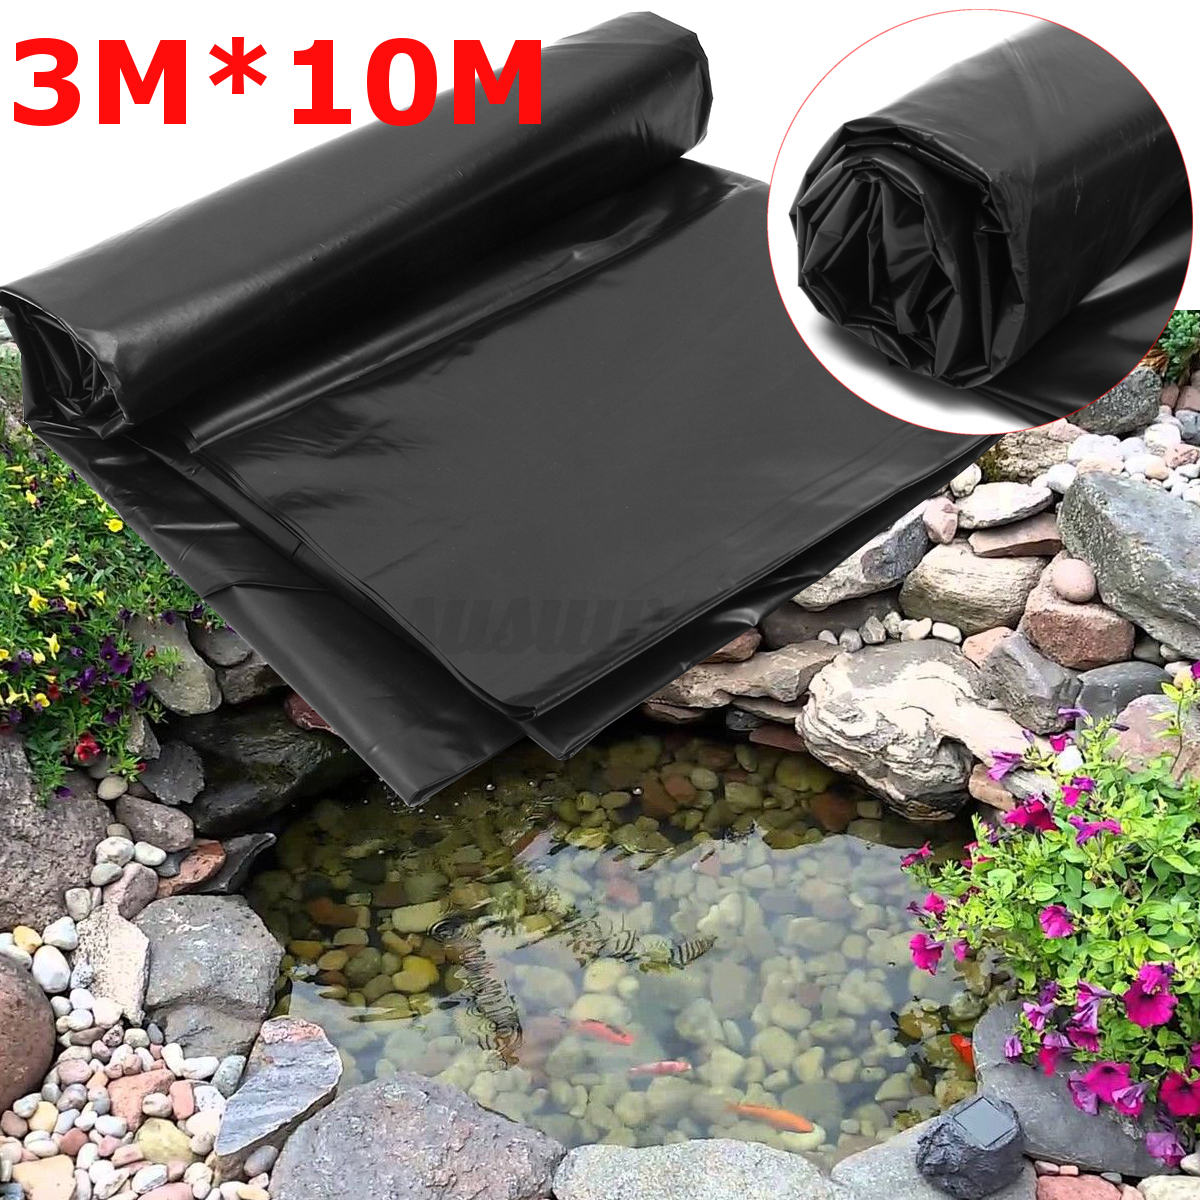 hdpe multi size durevole membrana fish pond liners per. Black Bedroom Furniture Sets. Home Design Ideas